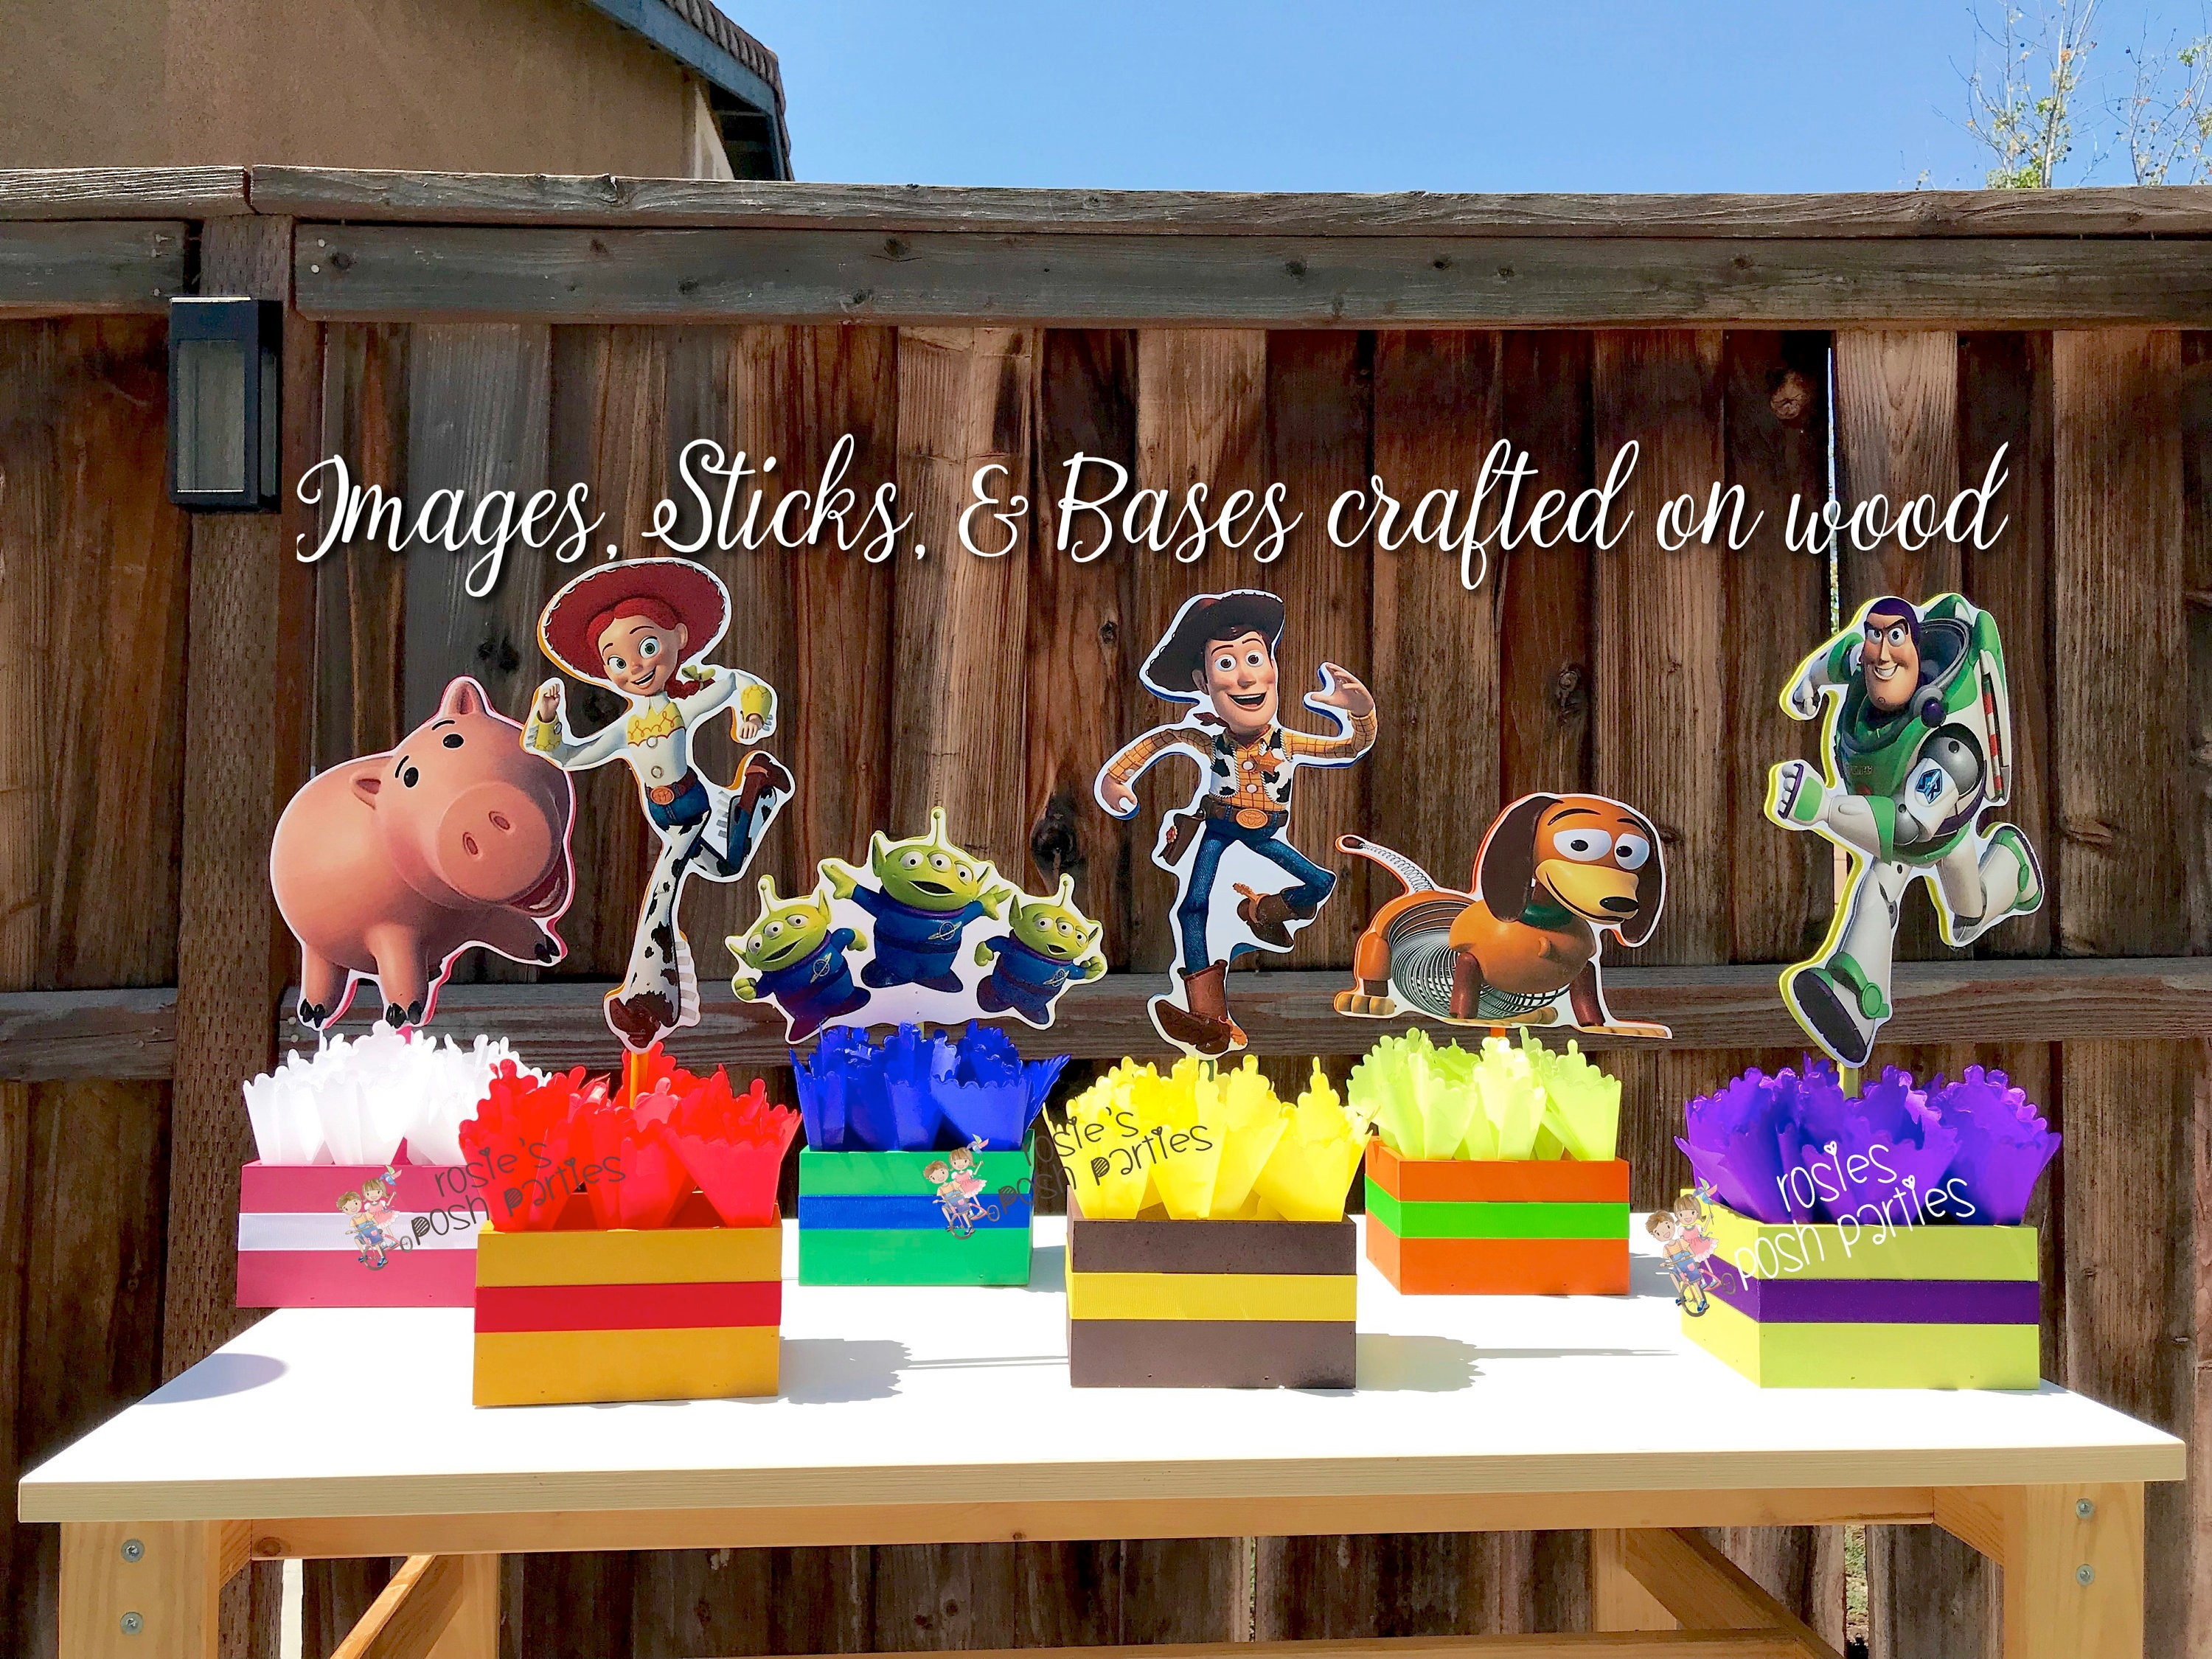 Terrific Toy Story Birthday Centerpiece Toy Story Party Buzz Lightyear Woody And Jessie Wood Table Centerpiece On Base For Birthday Individual Download Free Architecture Designs Scobabritishbridgeorg